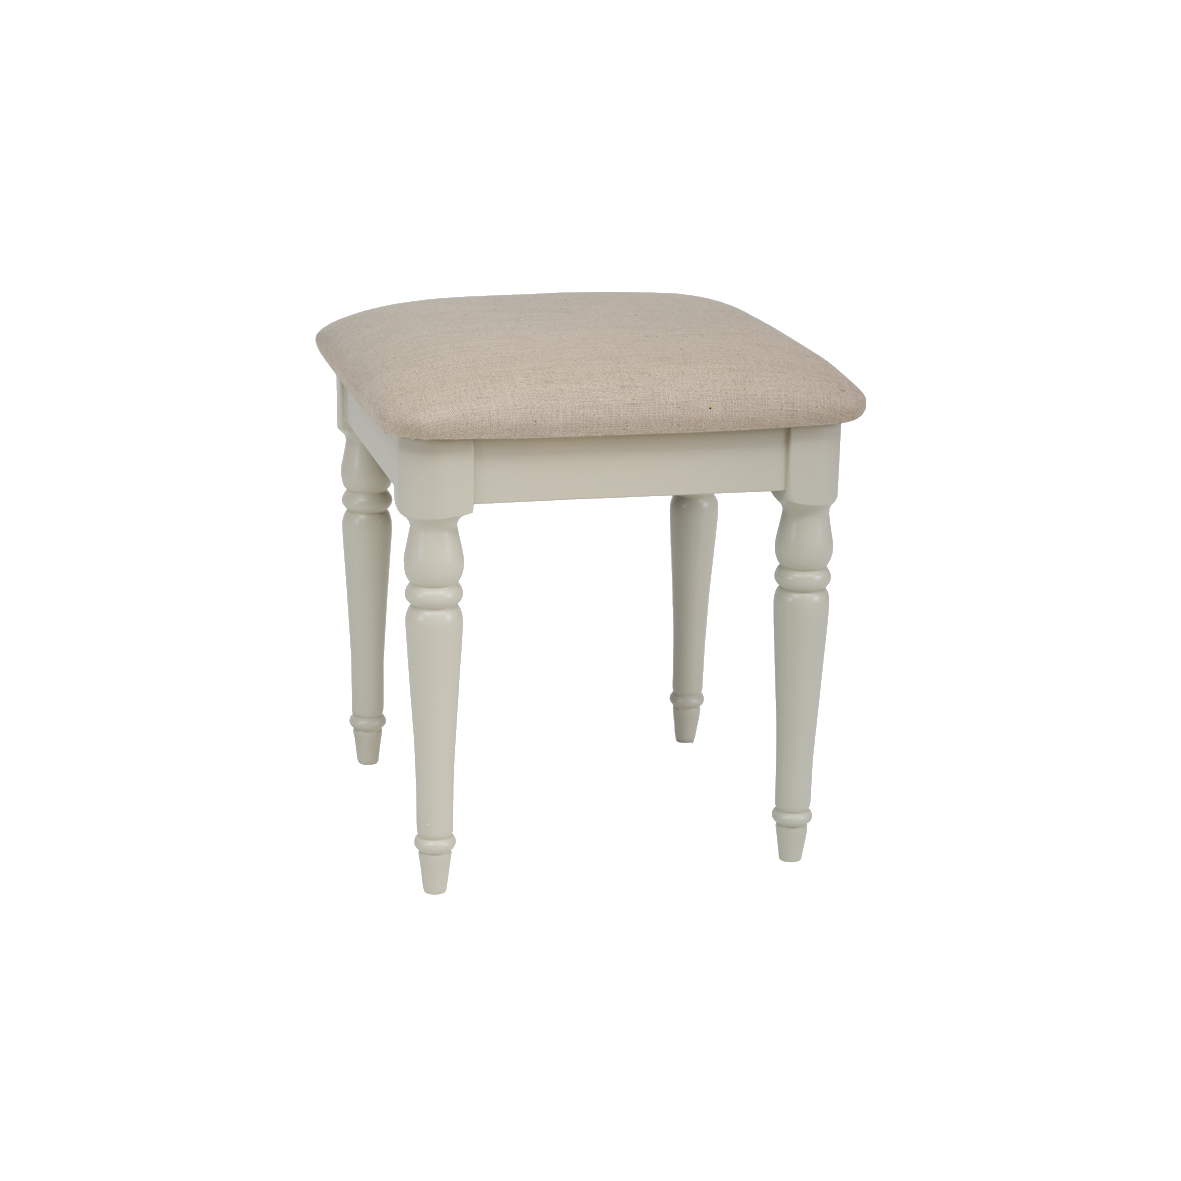 Cliona Bedroom Stool